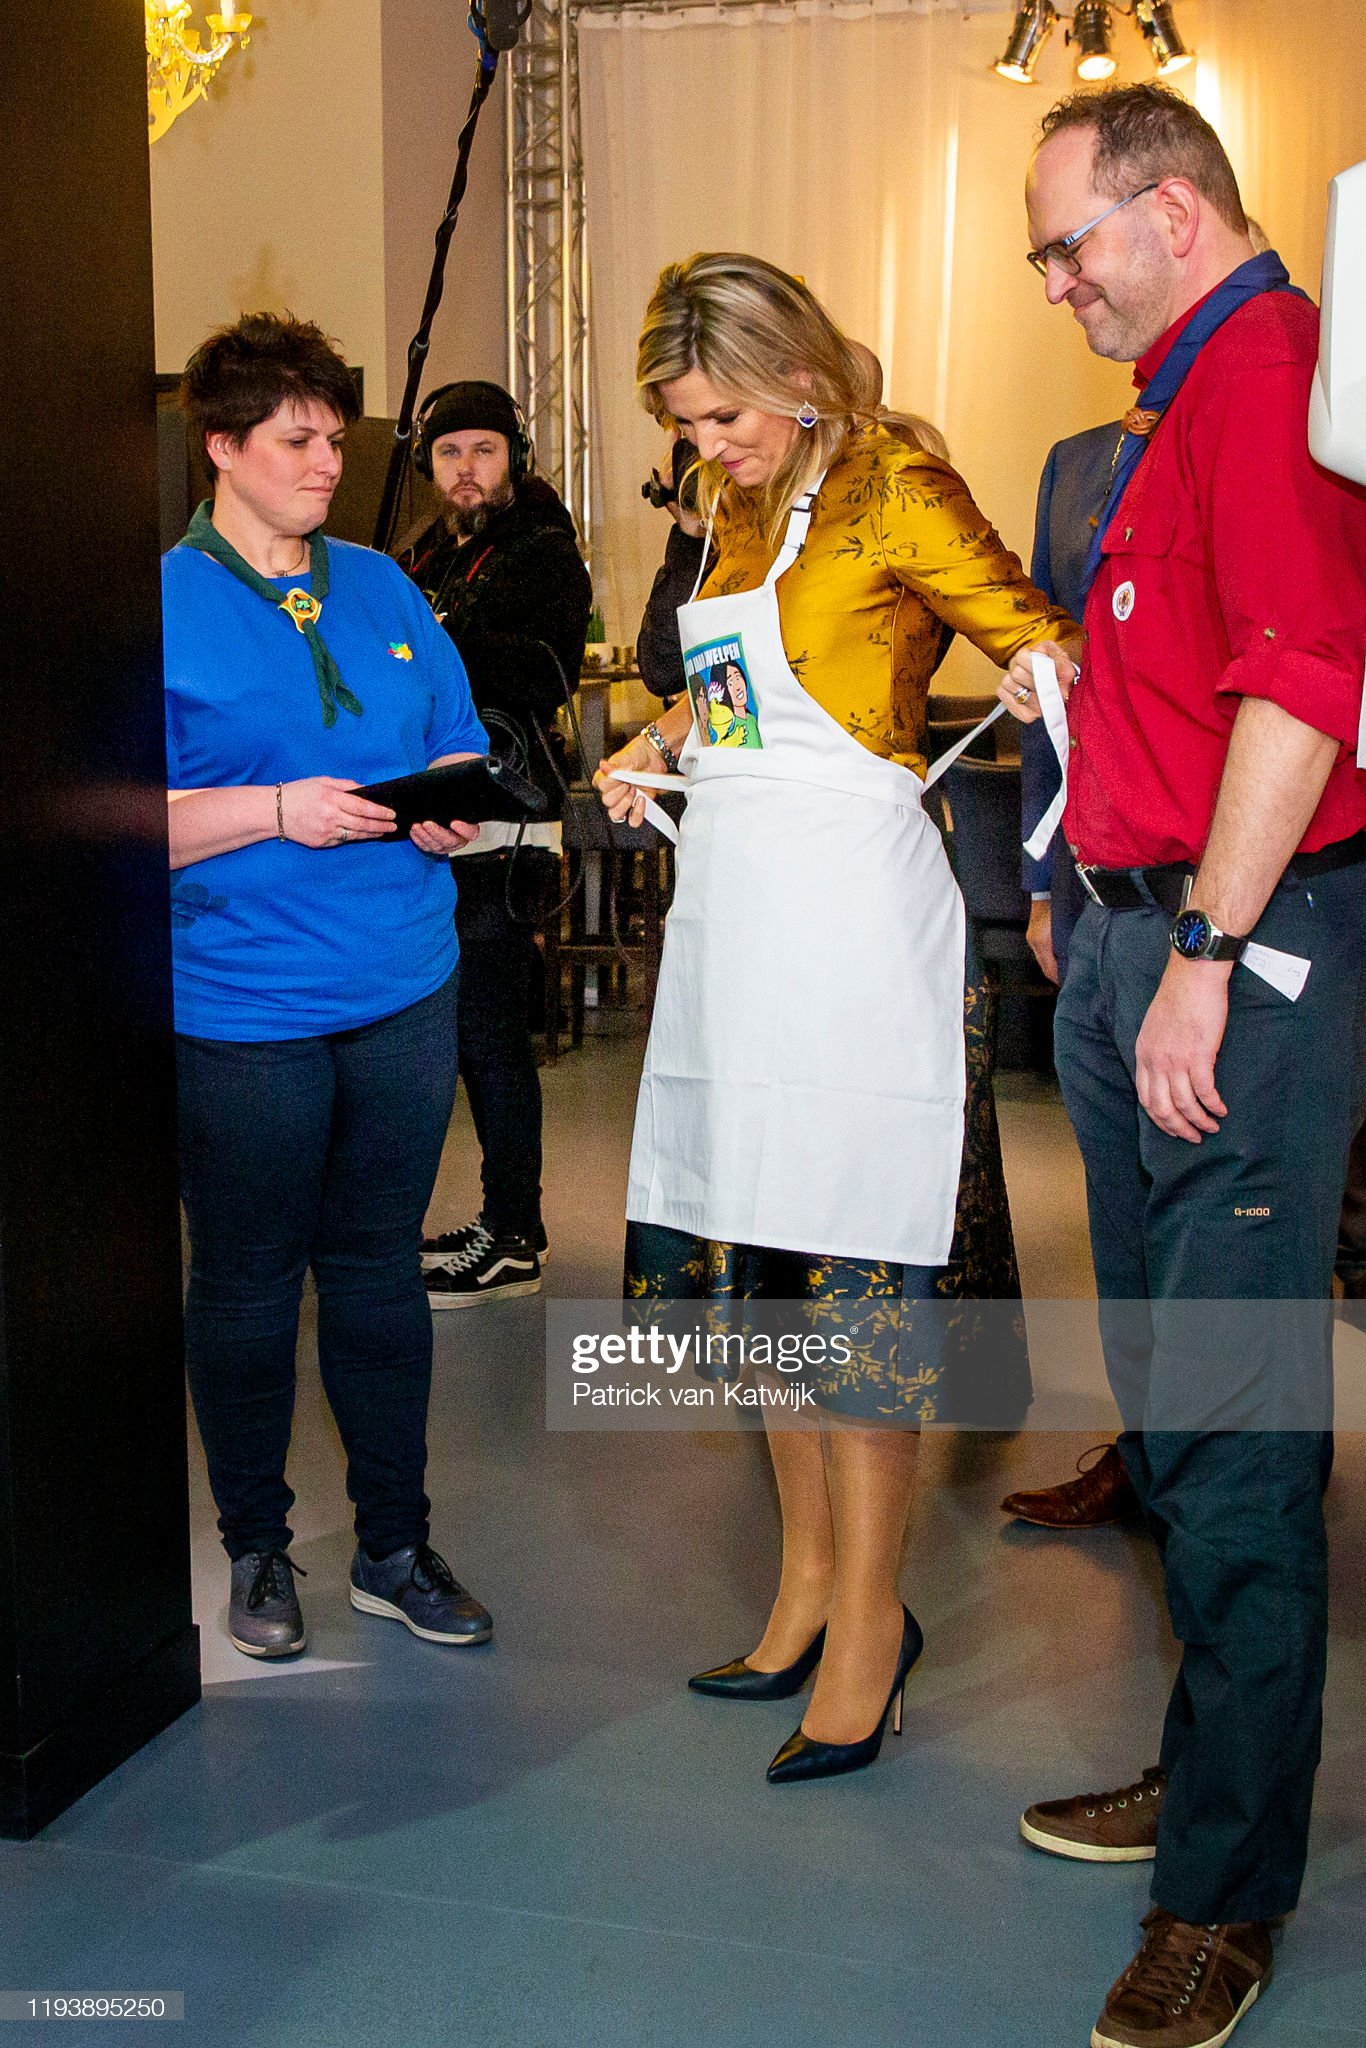 https://media.gettyimages.com/photos/queen-maxima-of-the-netherlands-during-a-visit-to-the-scouting-cubs-picture-id1193895250?s=2048x2048